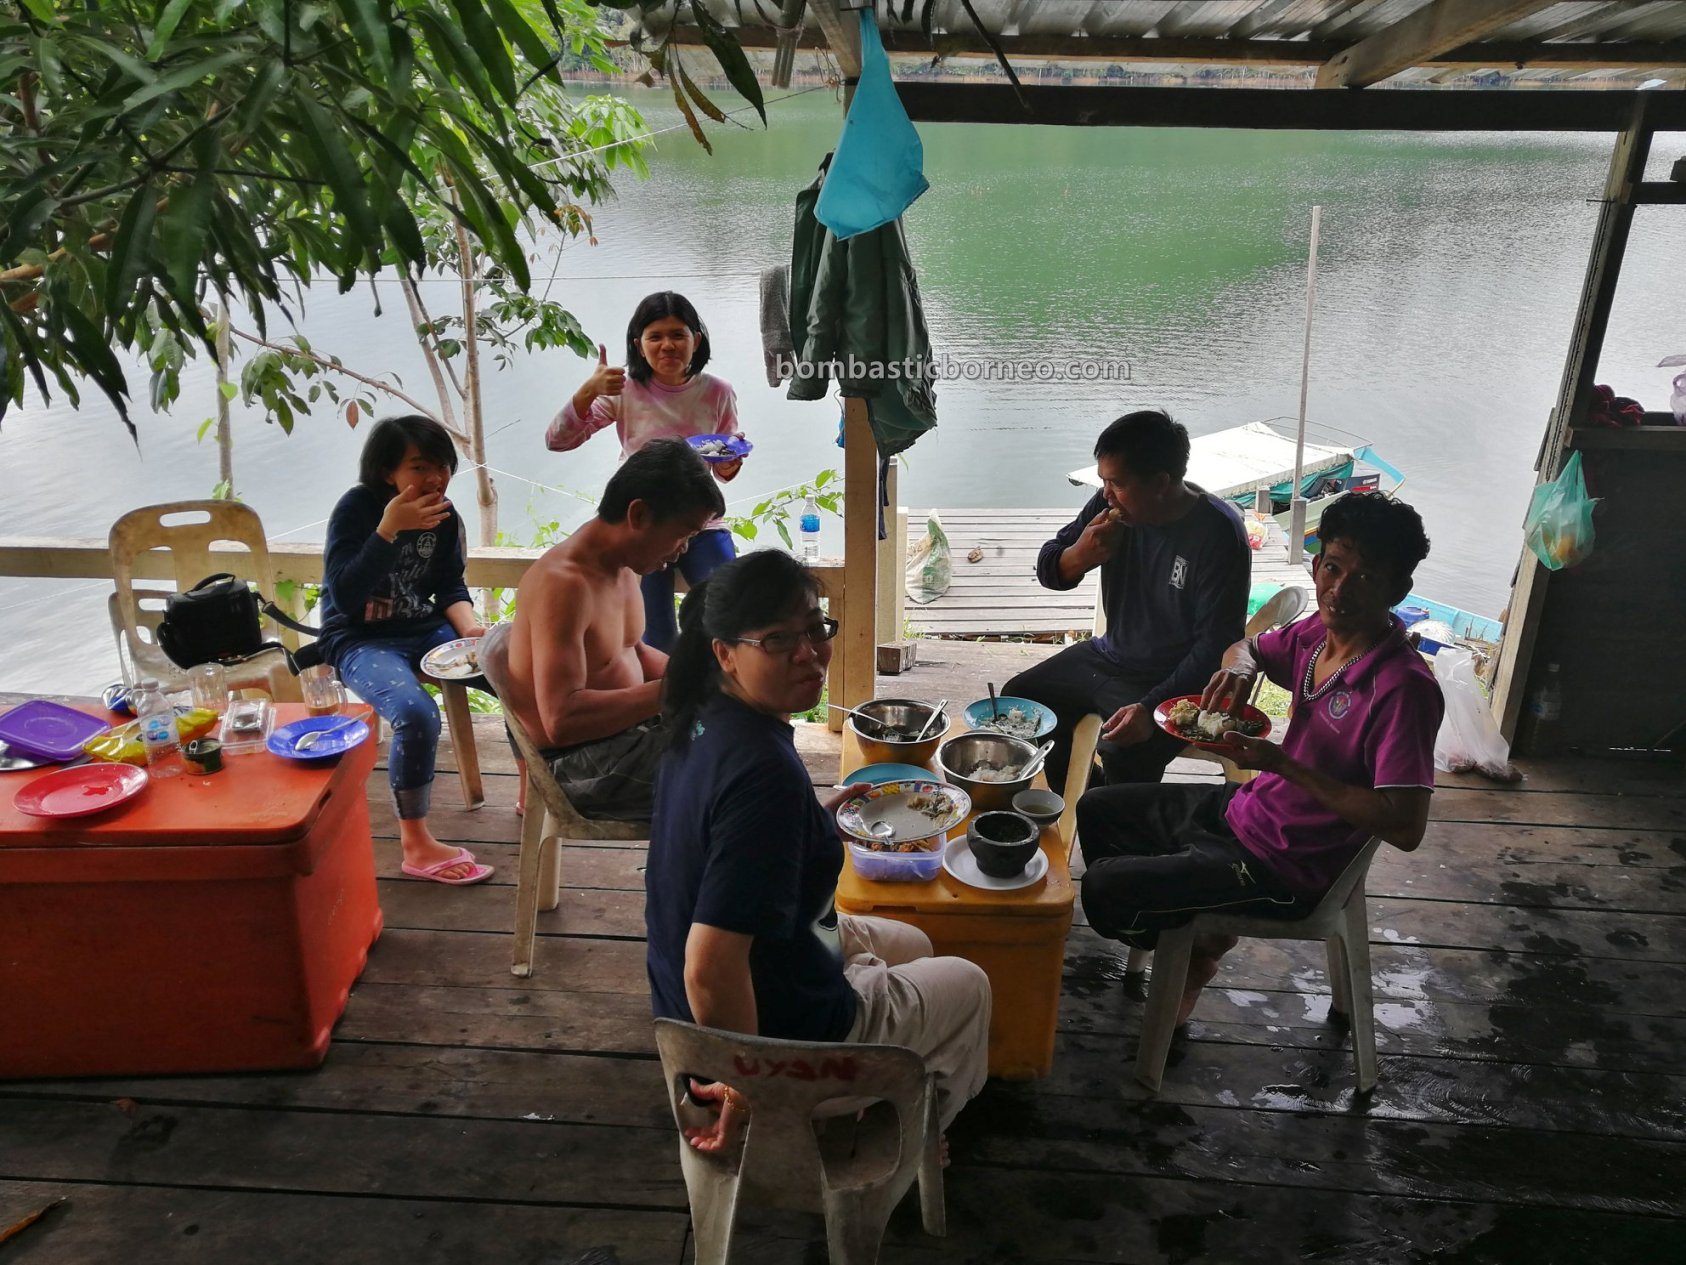 empangan, backpackers, Ikan semah, traditional, fishing trip, memancing, chalet, Belaga, Kapit, native, Tourism, tourist attraction, travel guide, 砂拉越巴贡水电站, 马来西亚钓鱼之旅,